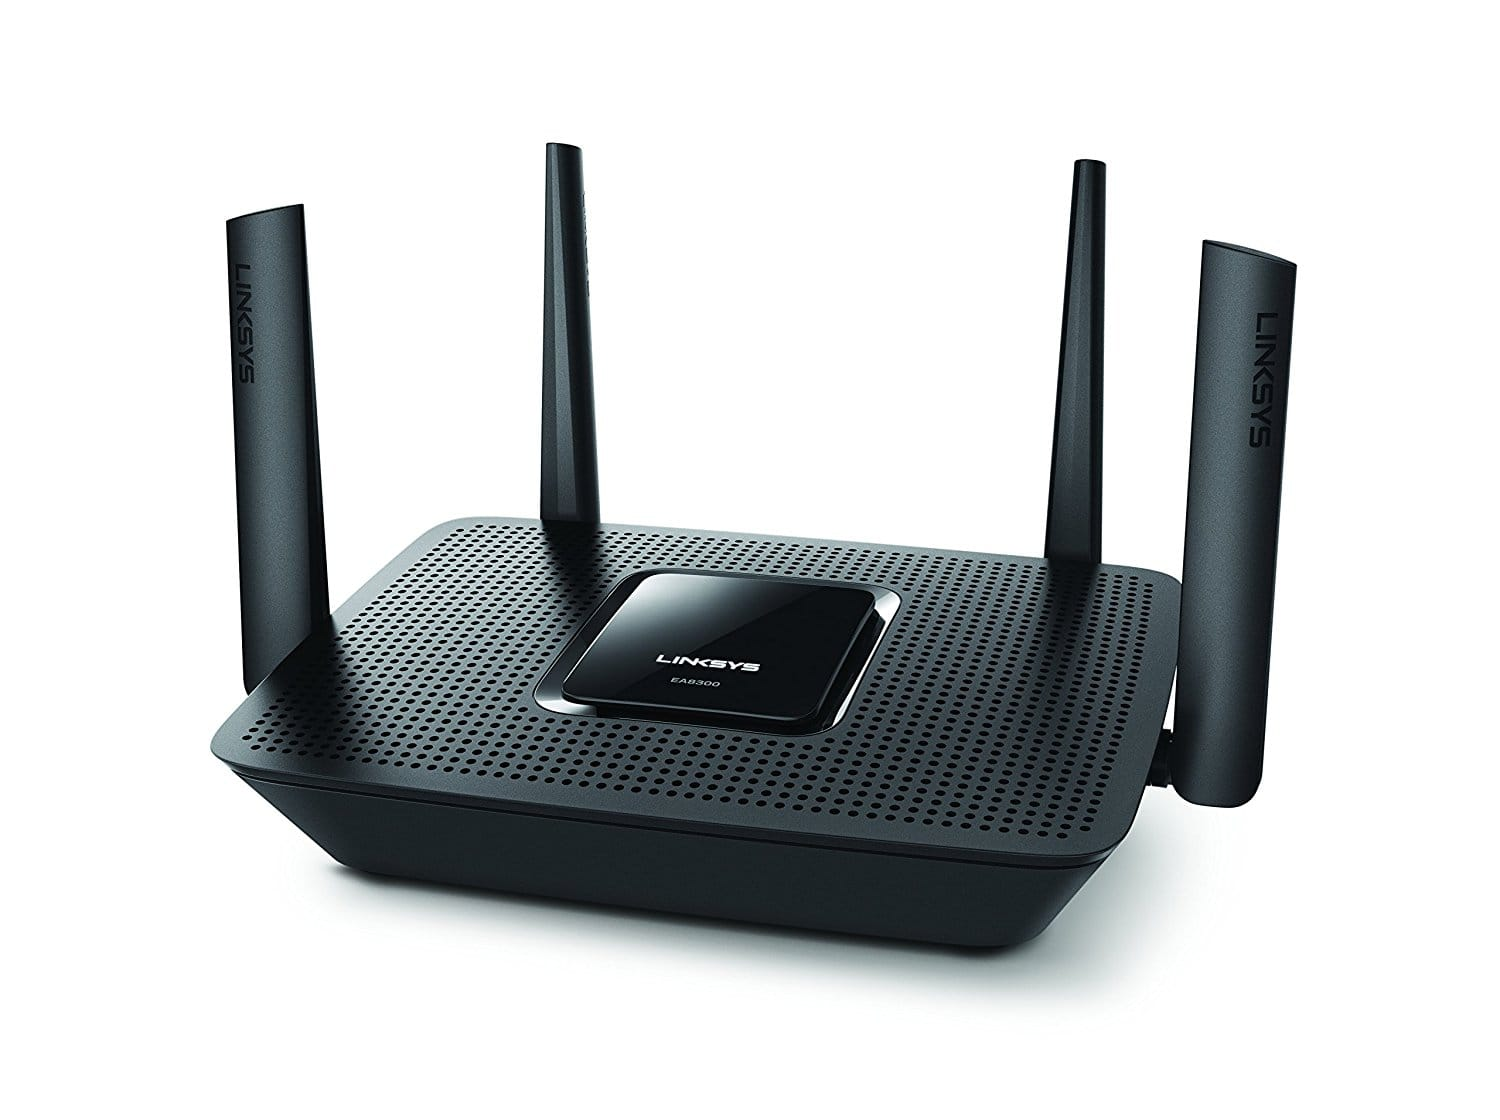 Linksys Max-Stream AC2200 Tri-Band Wi-Fi Router $99.99 (Amazon)